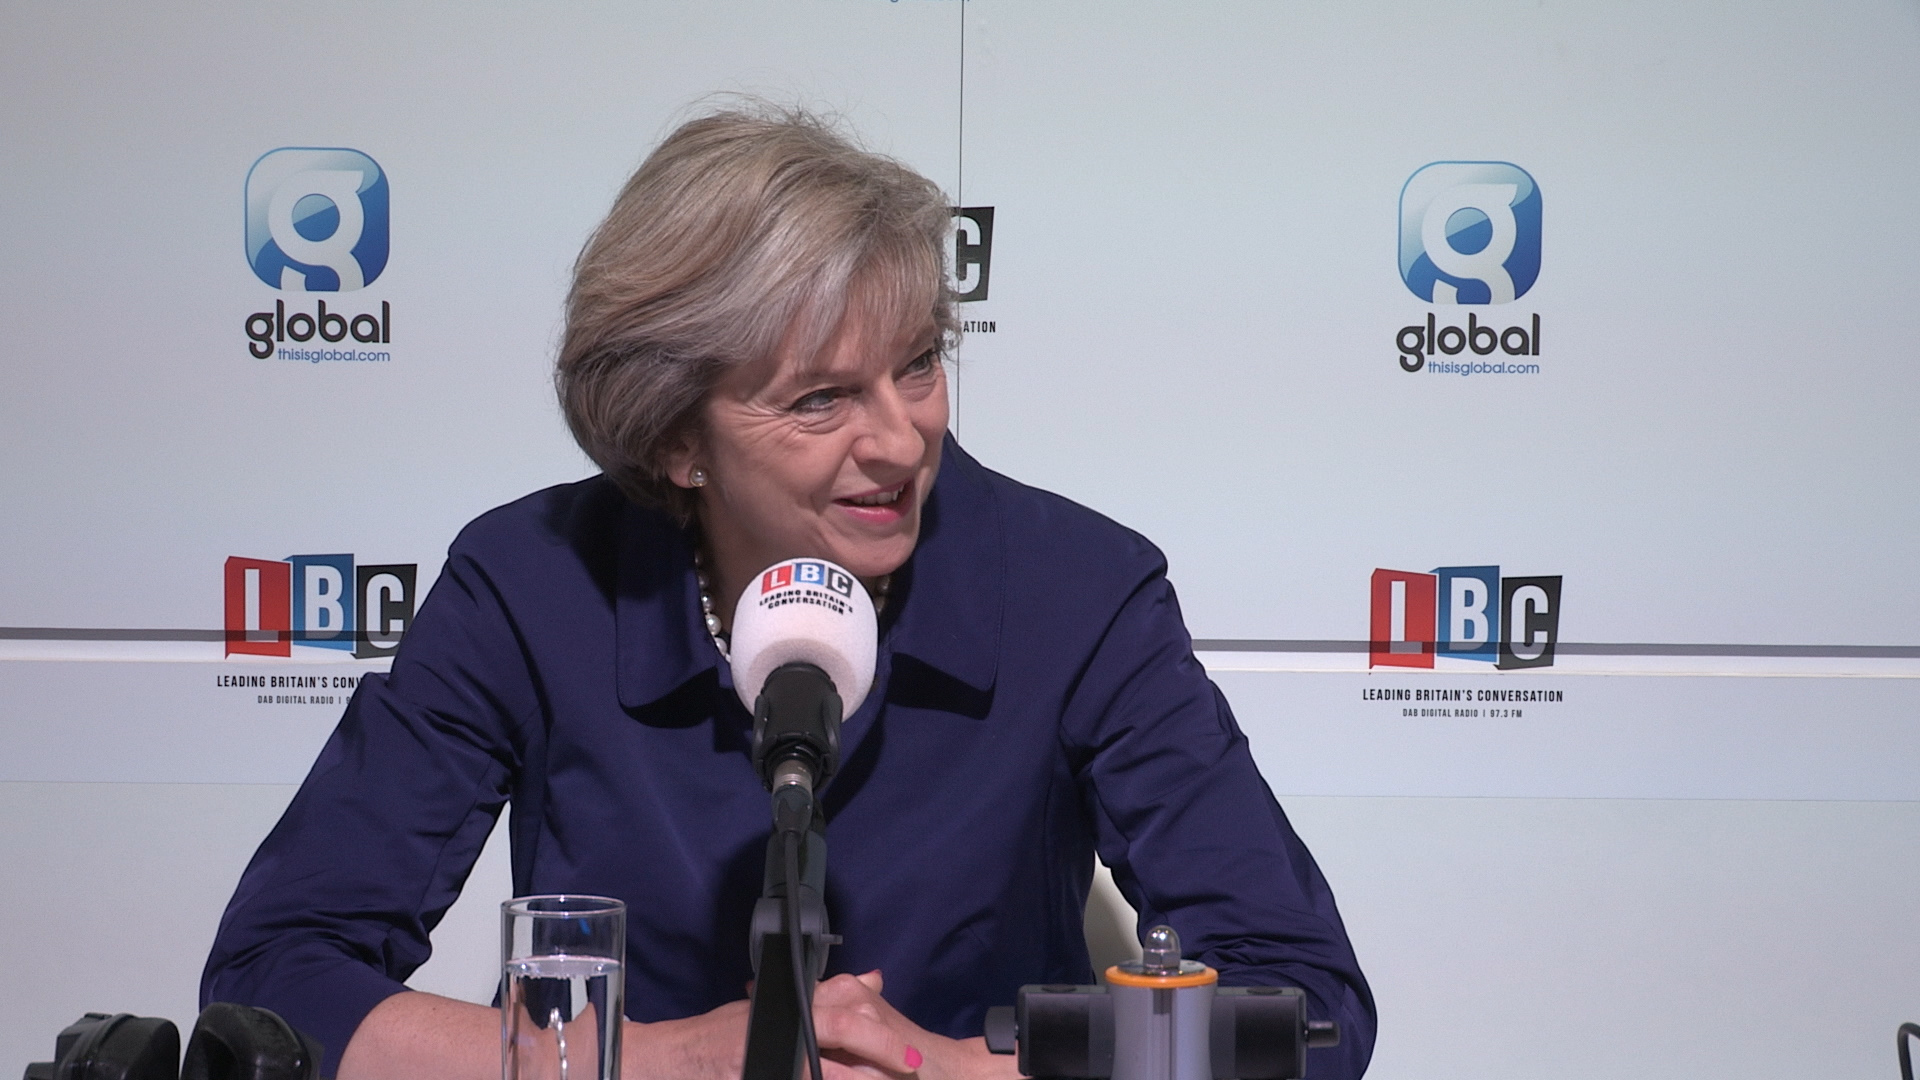 Theresa May LBC conference